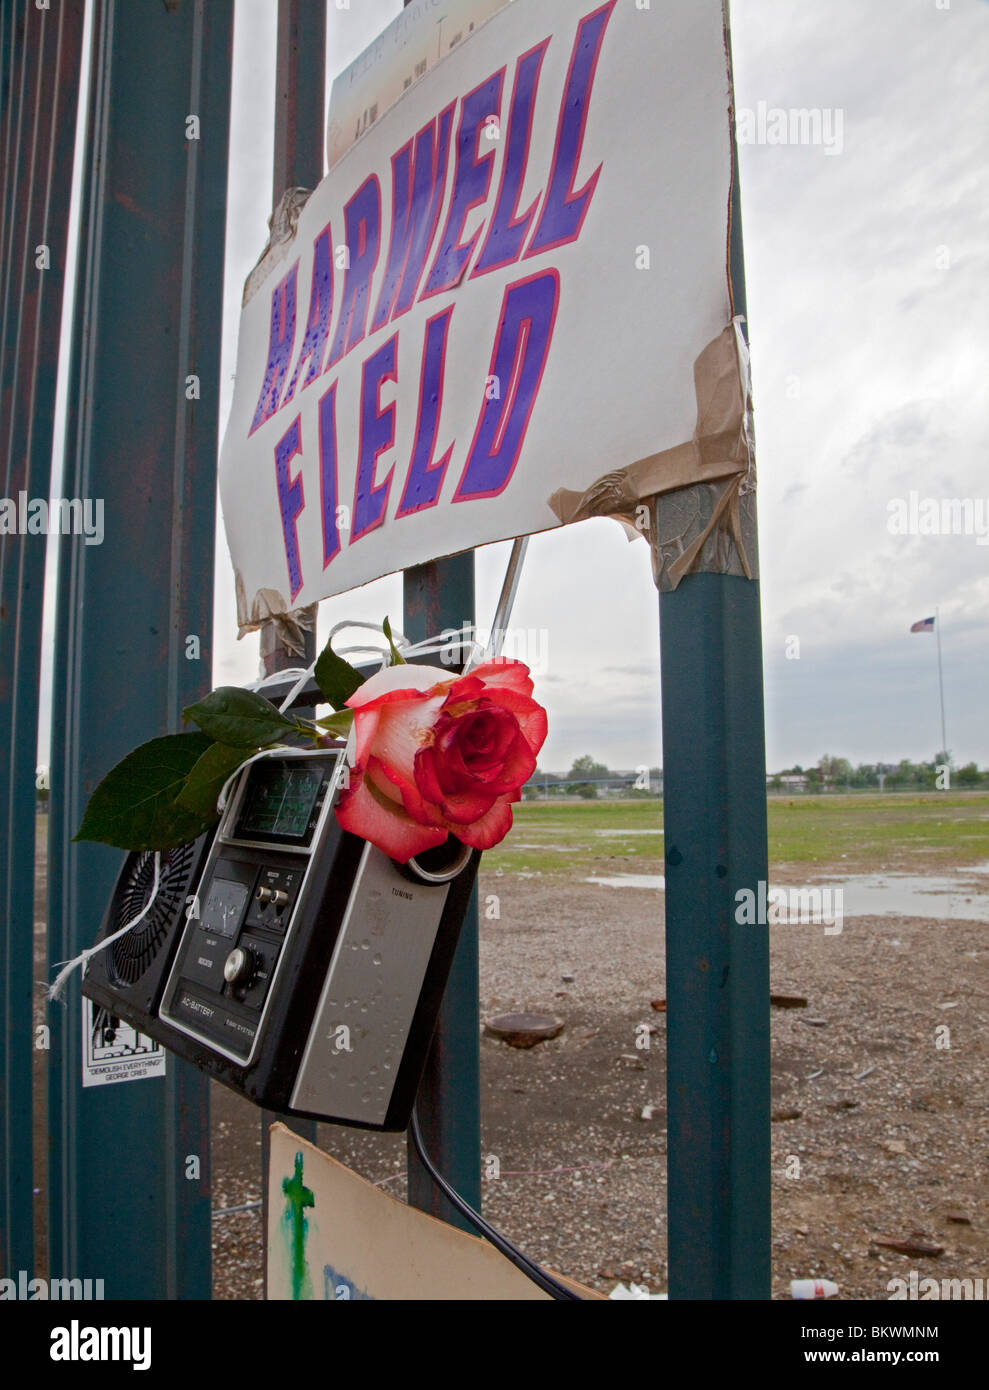 Memorial to Detroit Tigers Broadcaster Ernie Harwell - Stock Image